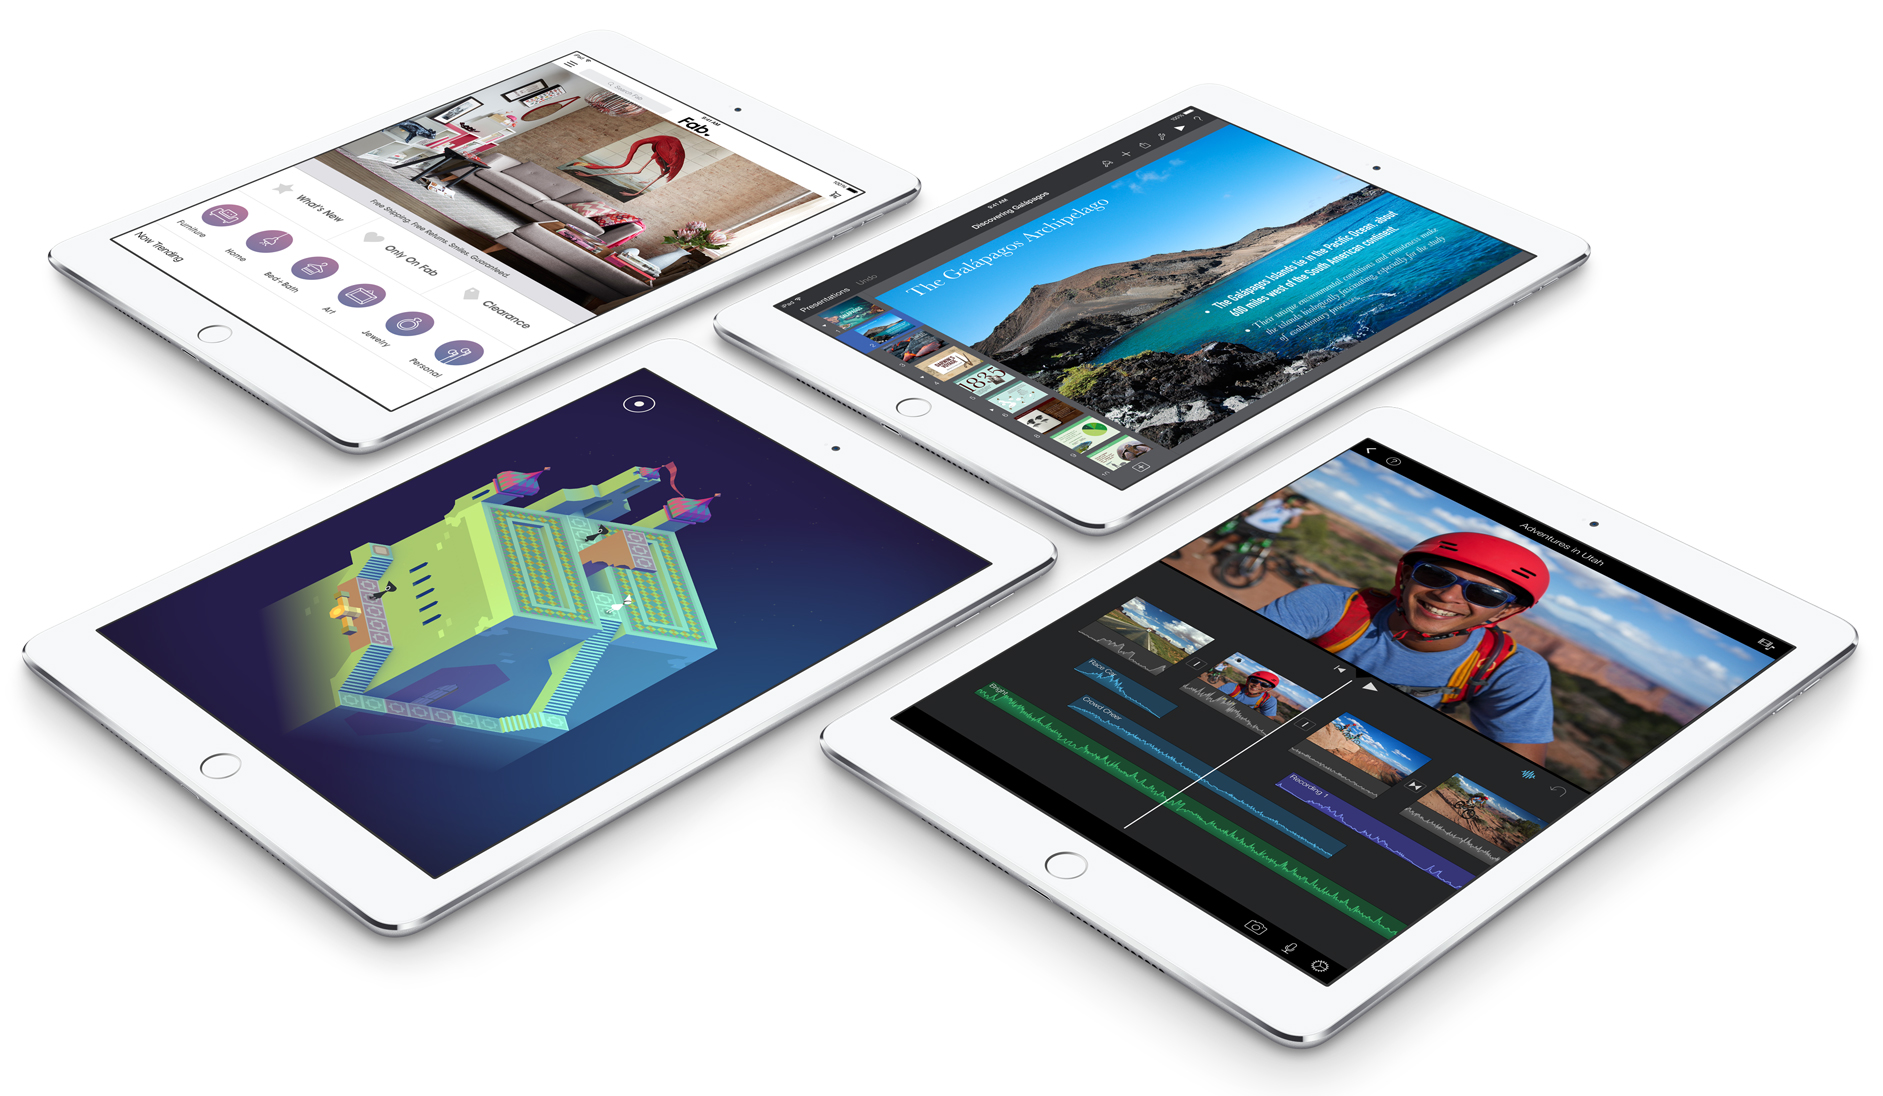 You can preorder the brand new iPad Air 2 and iPad mini 3 starting right now